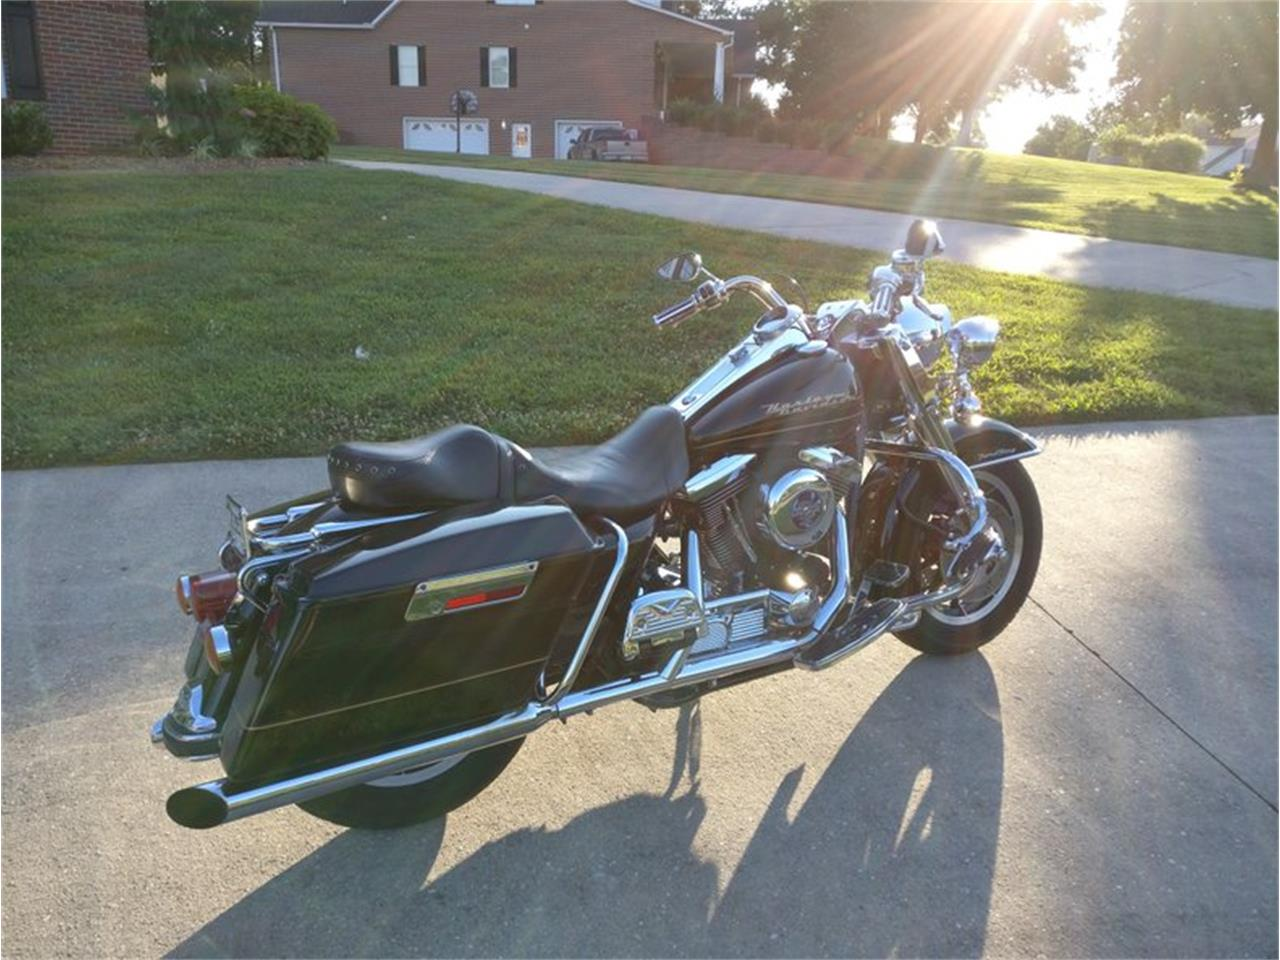 1998 Harley-Davidson Road King for sale in Cookeville, TN – photo 5